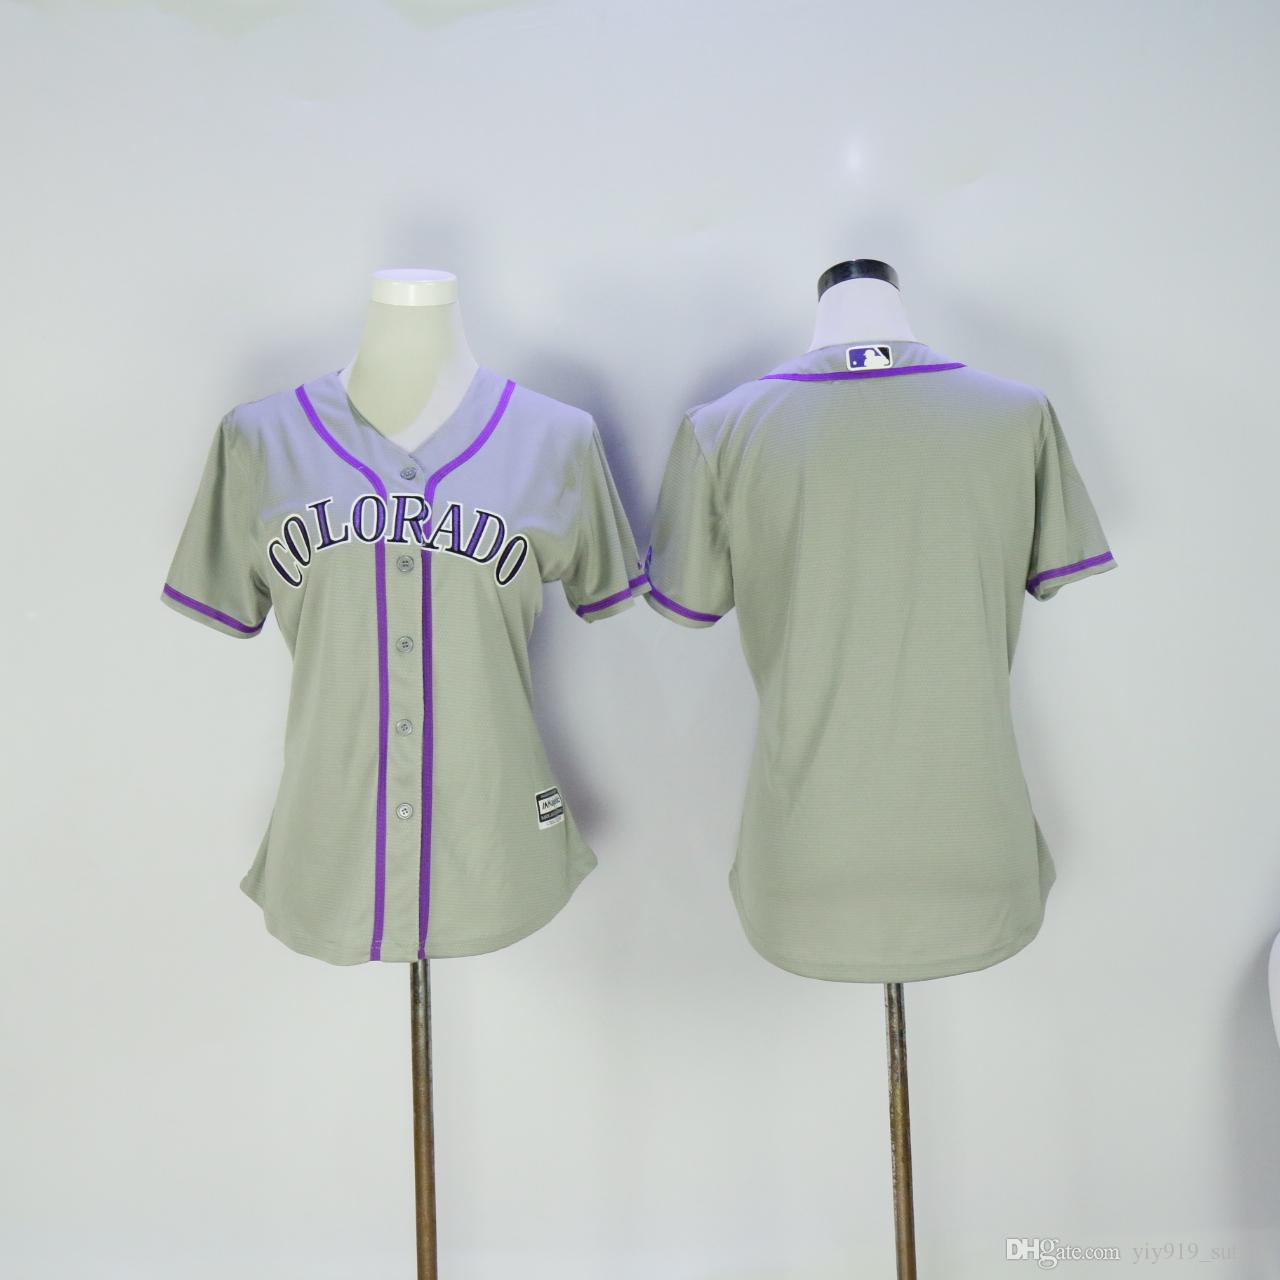 2017 new womens colorado rockies jersey blank grey with purple font cool base baseball jersey accept